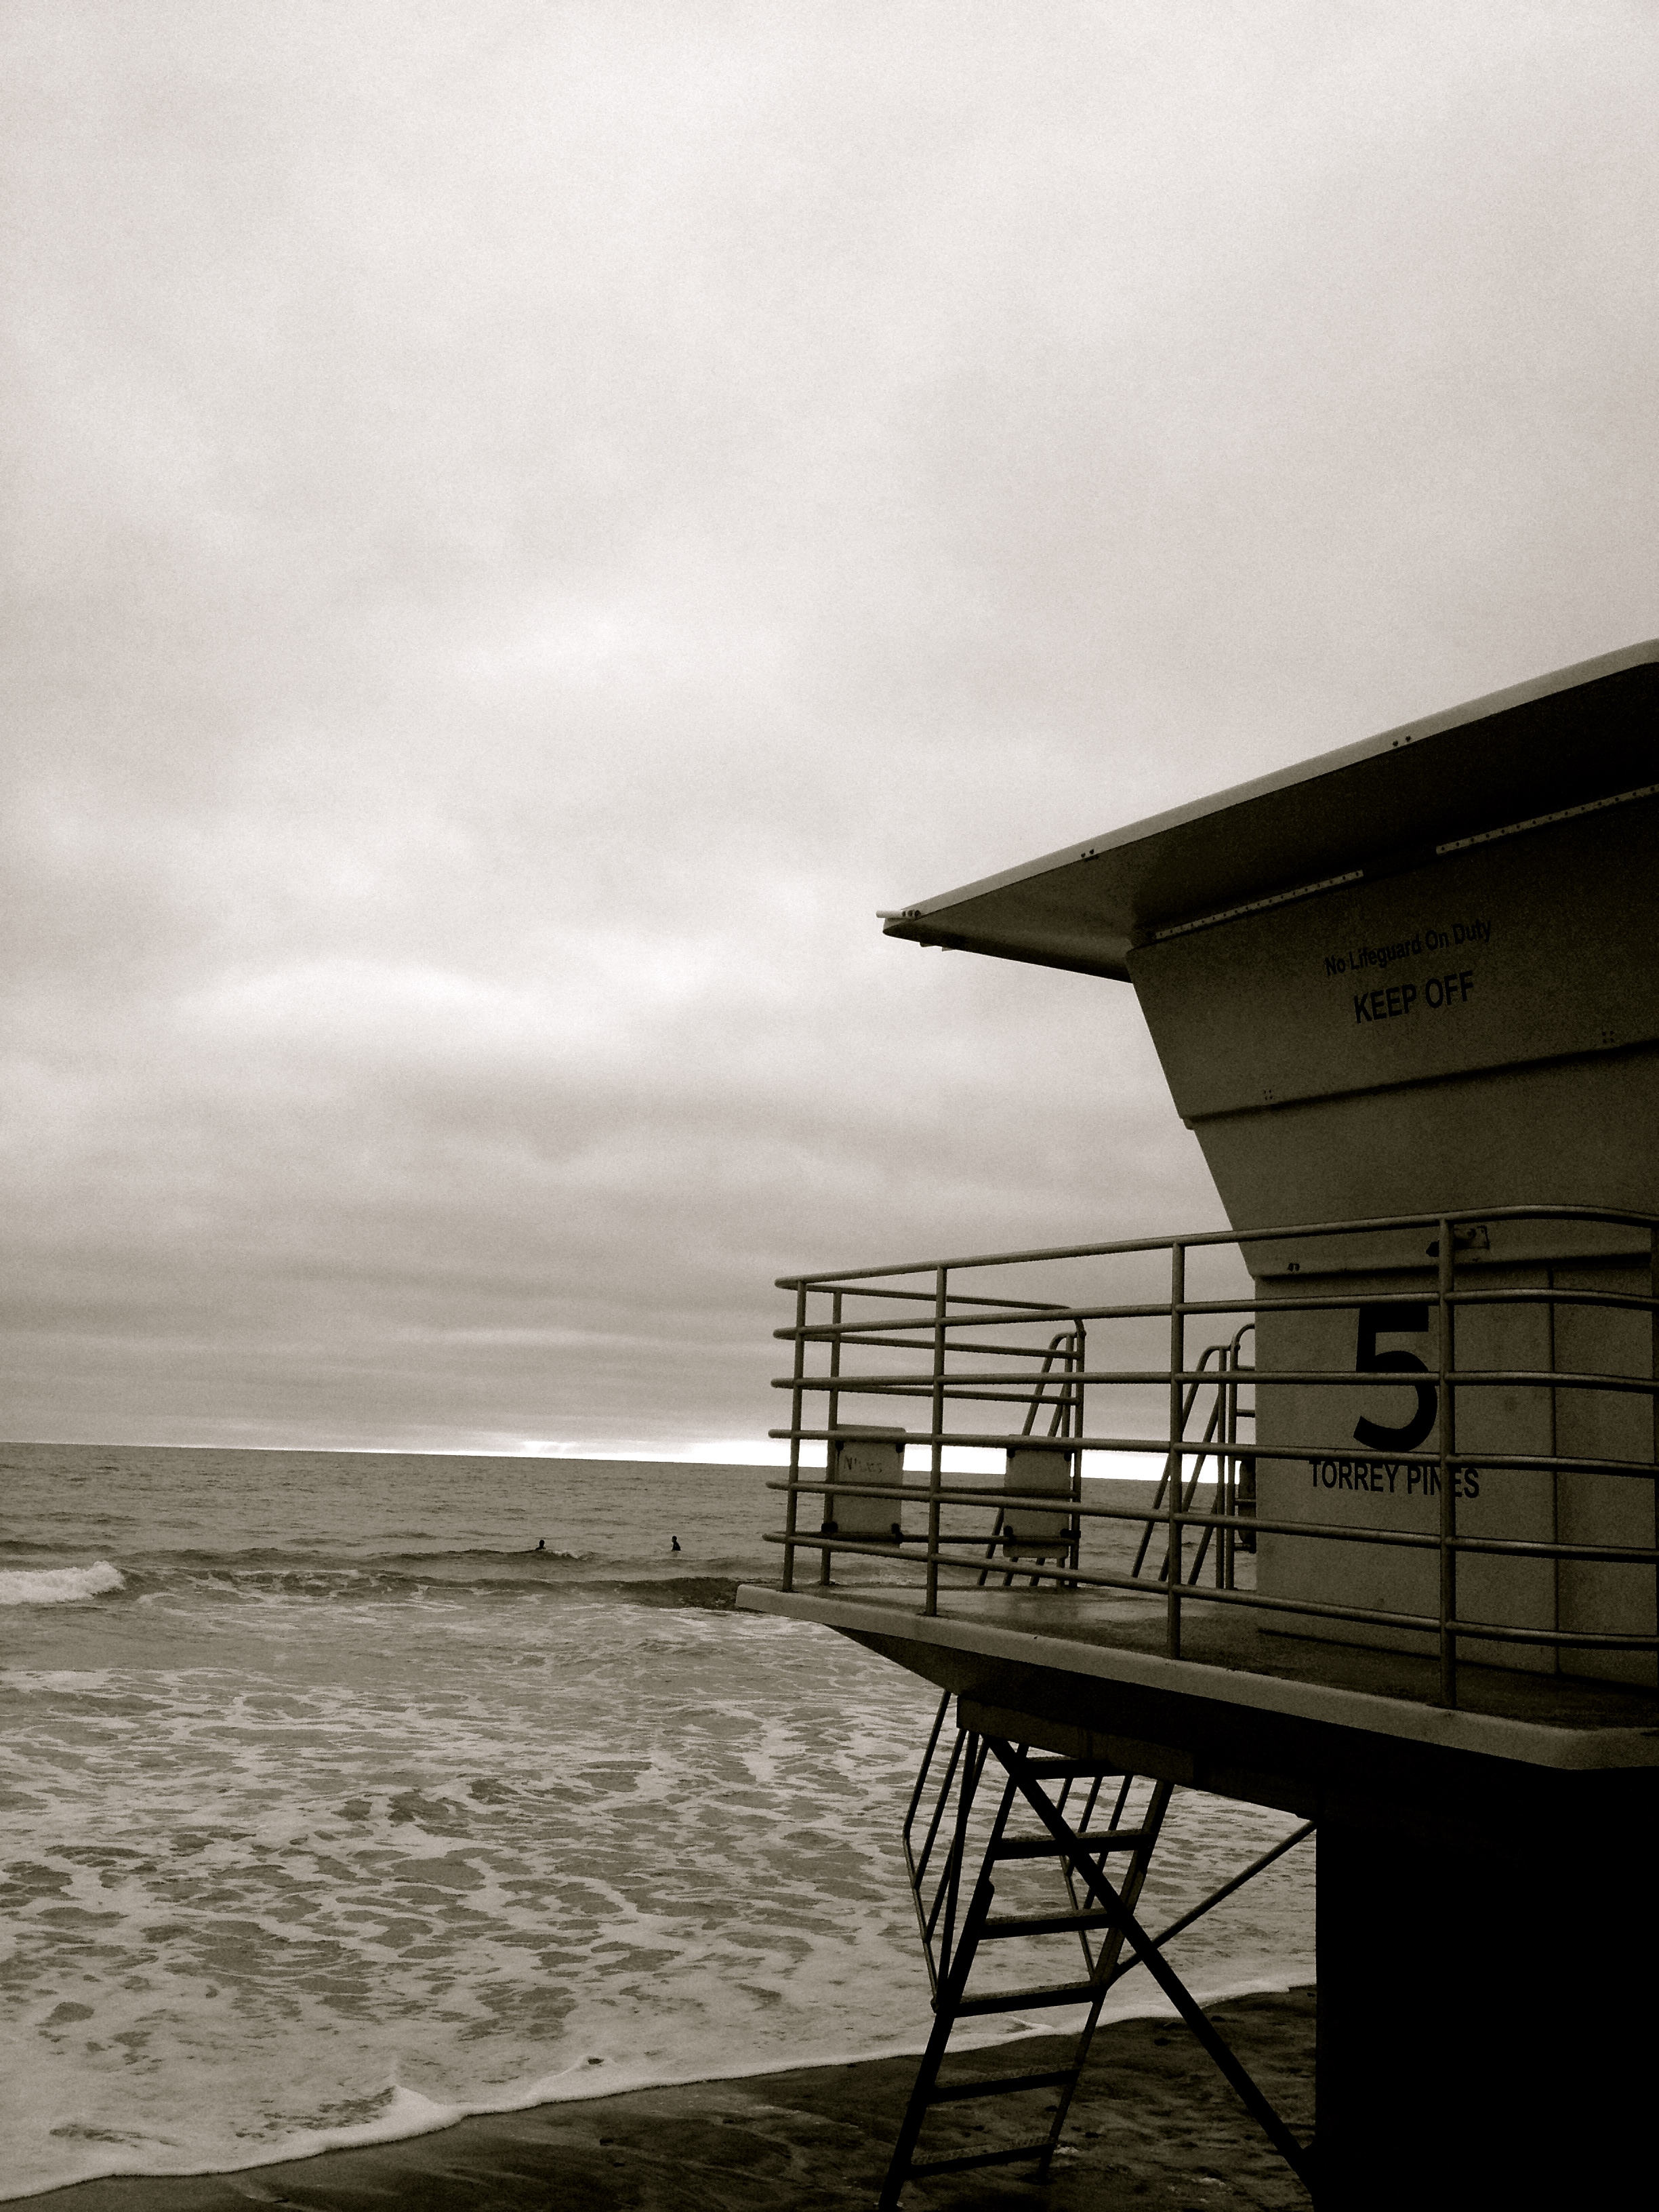 Lifeguard lookout sits vacant while two surfers await an evening wave.